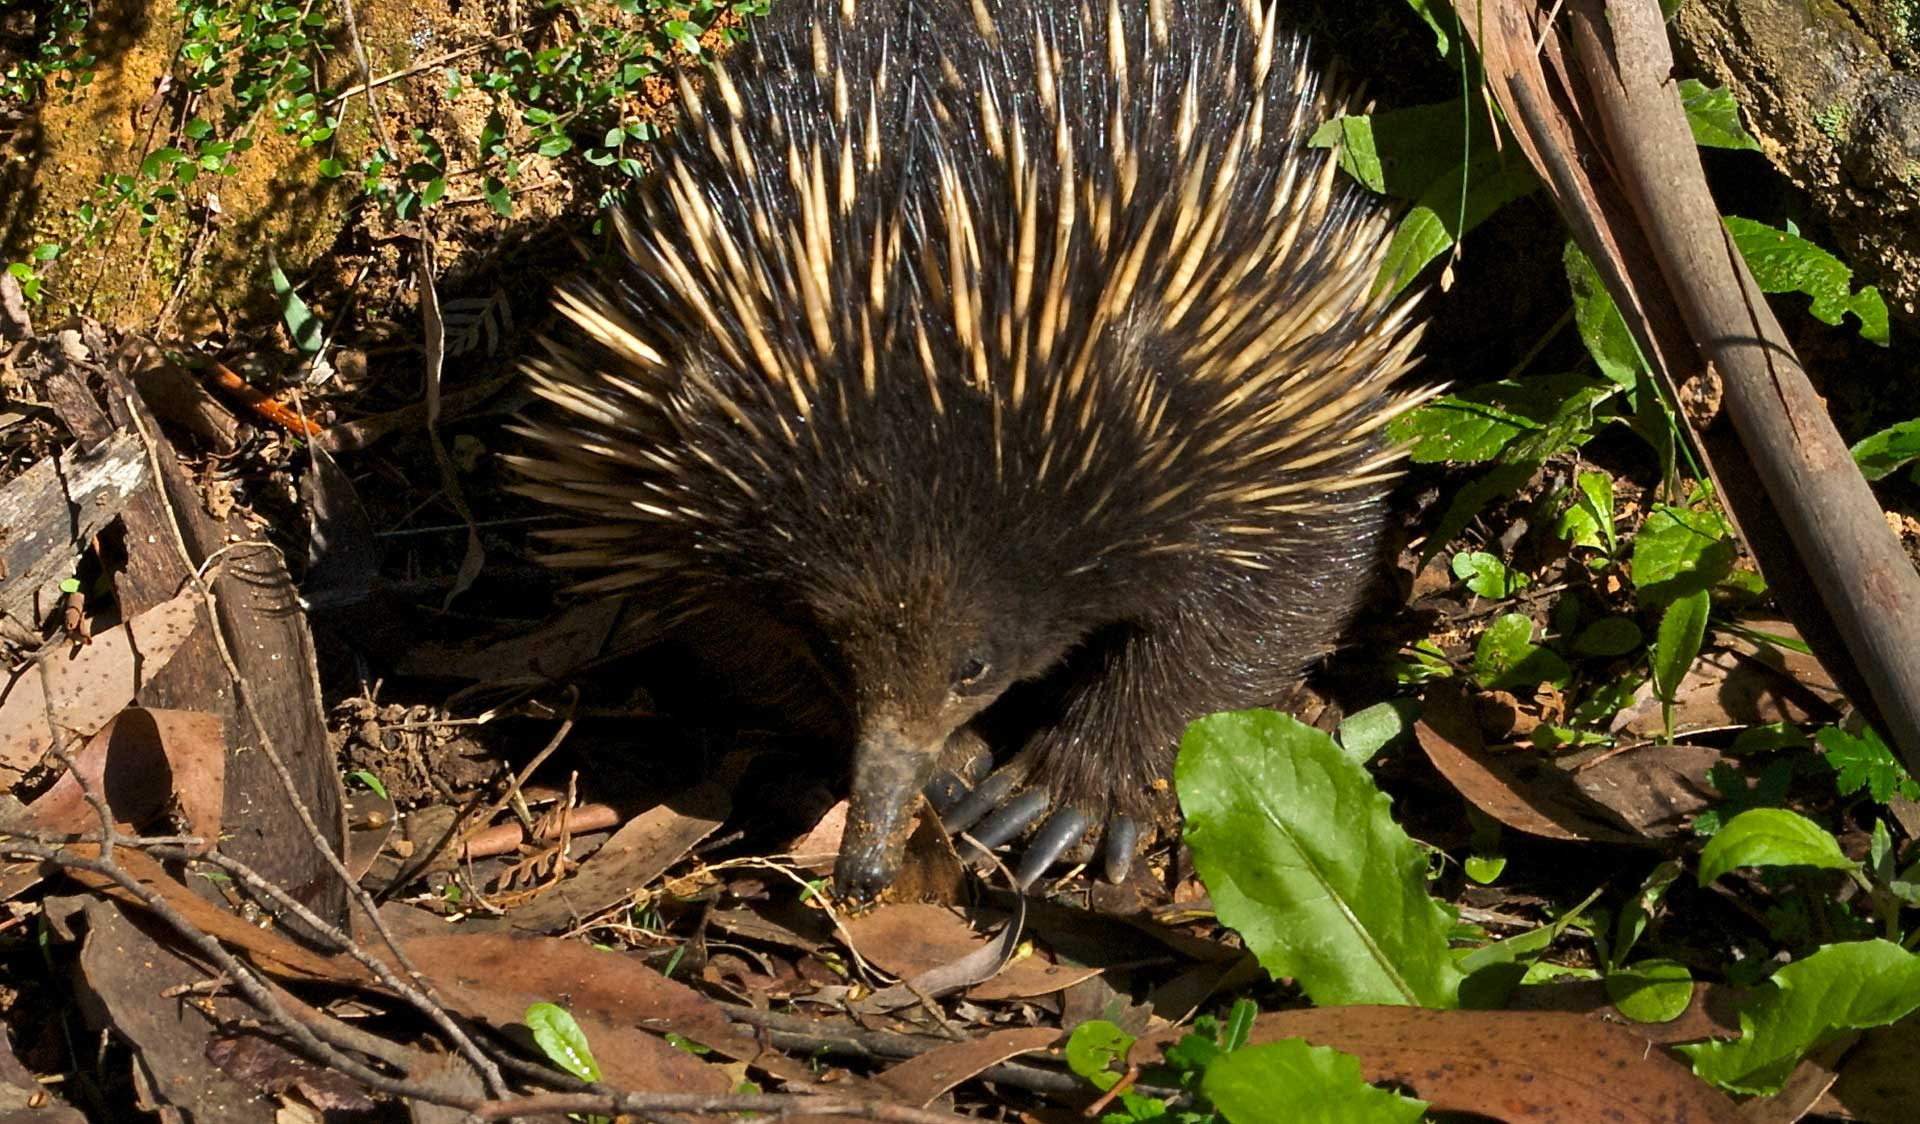 An echidna digs through the under growth in Brisbane Ranges National Park